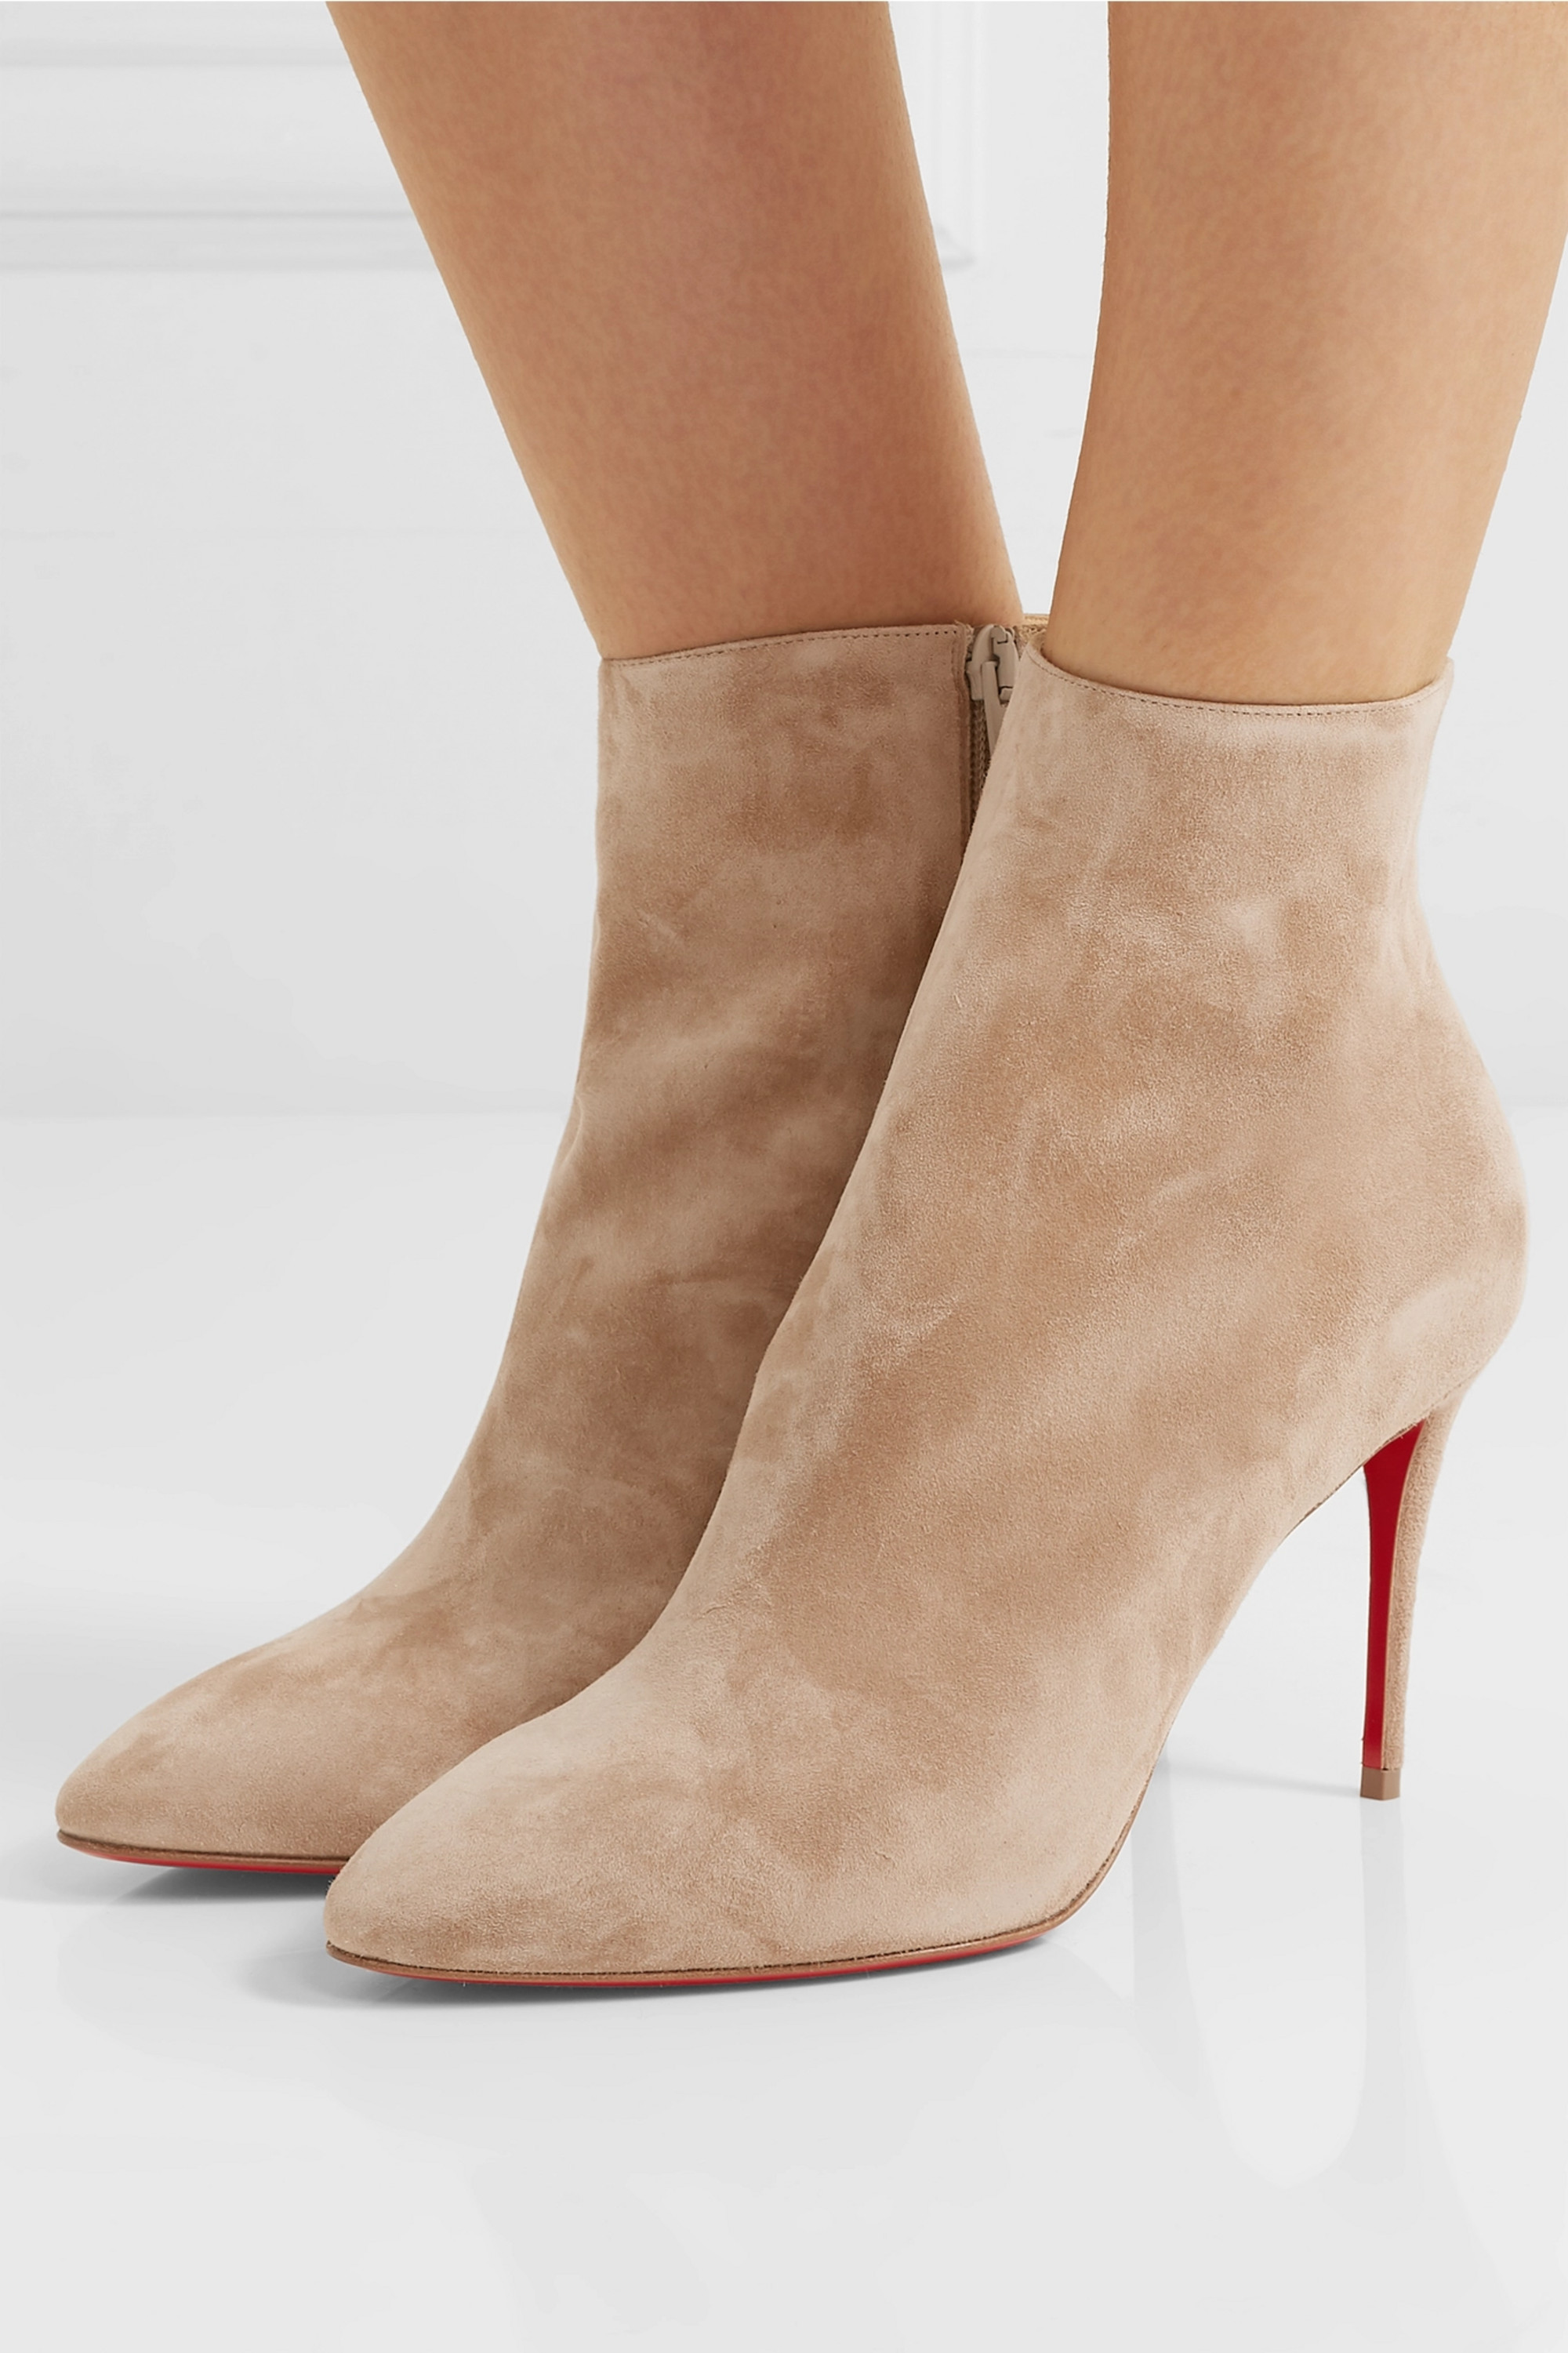 Beige Eloise 85 suede ankle boots